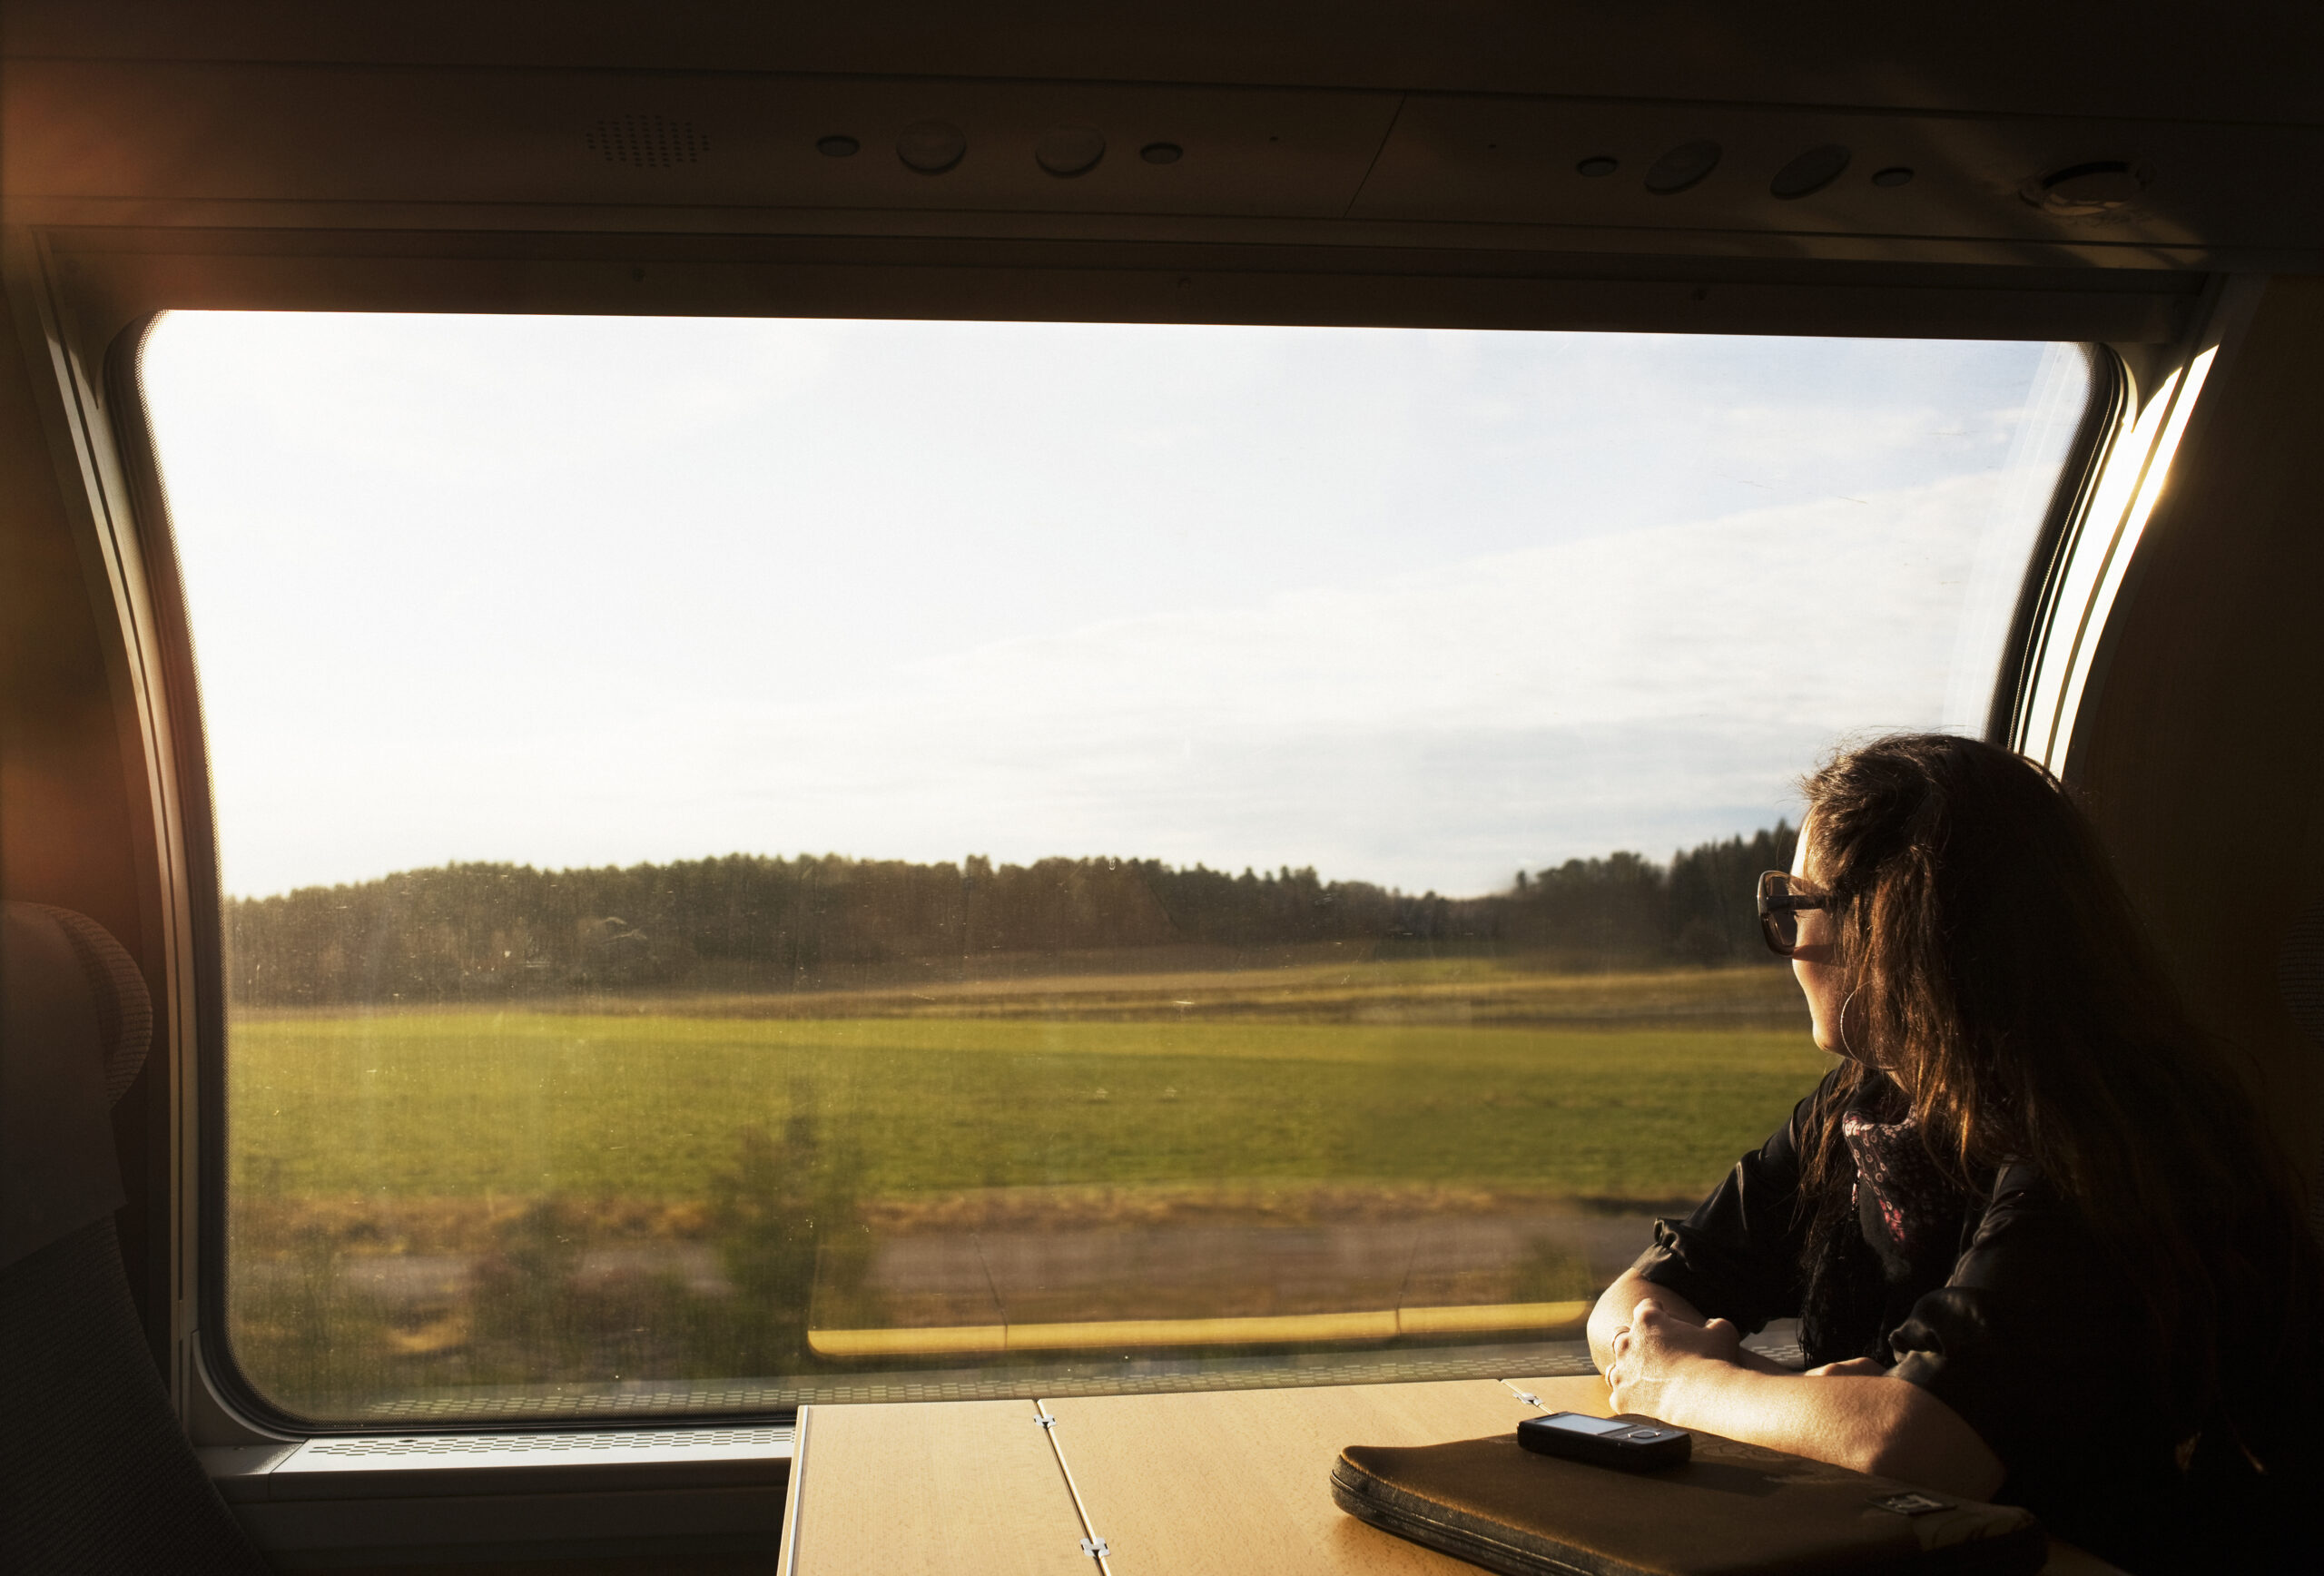 scandinavia, sweden, color image, commute, commuter, copy space, day, head and shoulders, horizontal, journey, landscape, leisure, lifestyle, look out, mid adult, one mid adult woman only, one person only, passenger, photography, relaxing, ride, side view, train, vehicle interior, window, tågfönster, tåg, tågresa, resa, kvinna på tåg,